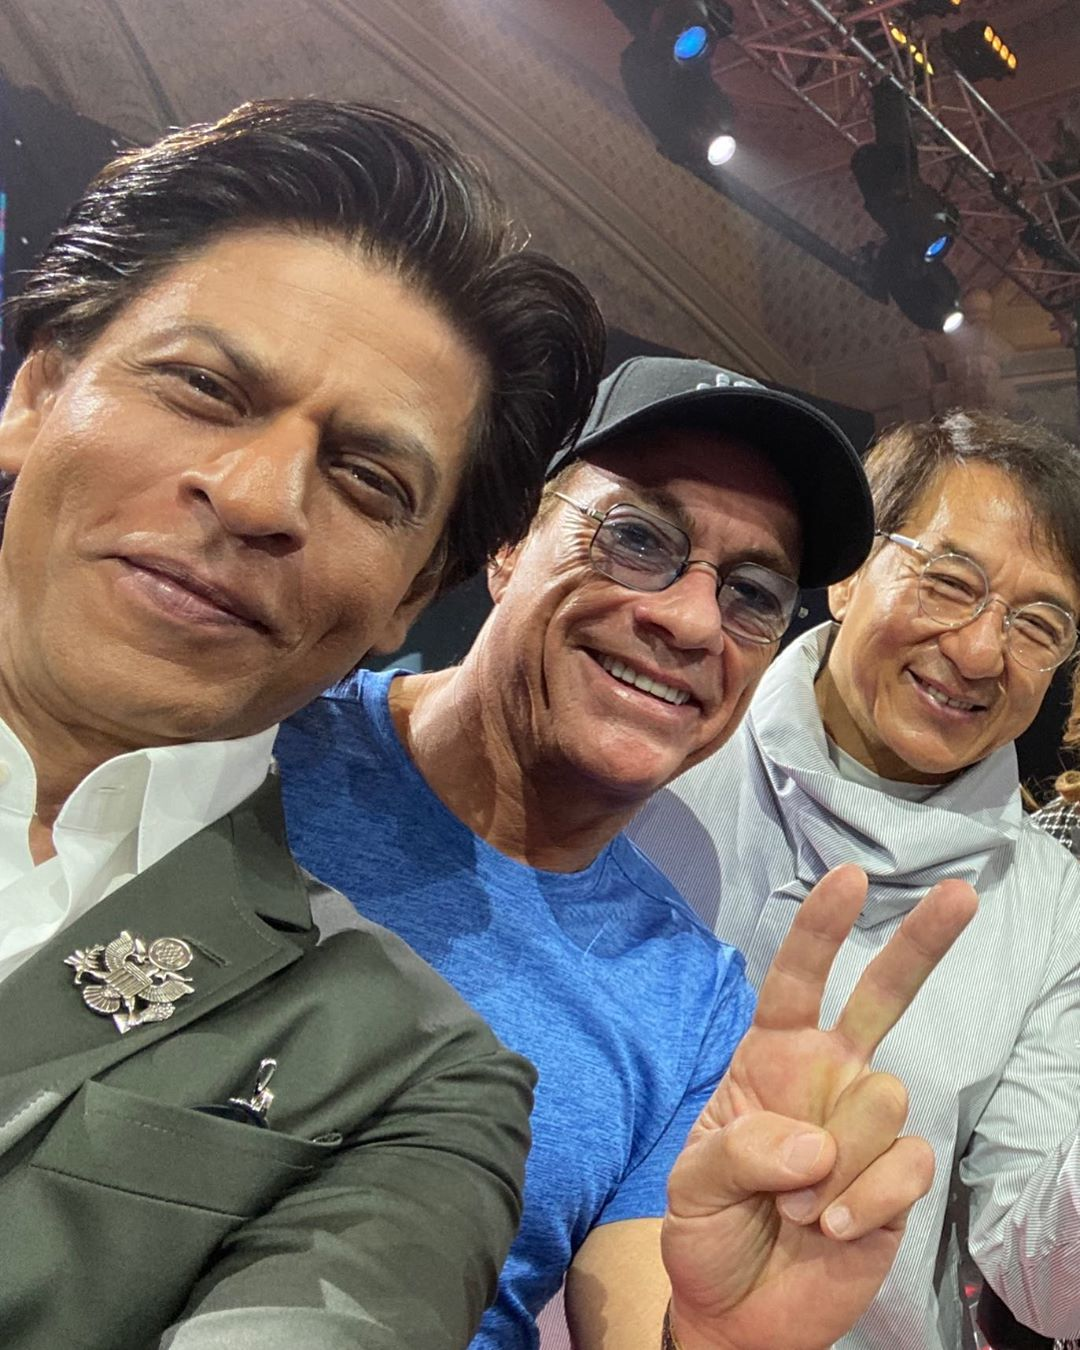 Khan, Damme, Chan at the #JoyForum19. The joys all mine as I got to meet my heroes. @jcvd @jackiechan @joyforumksa